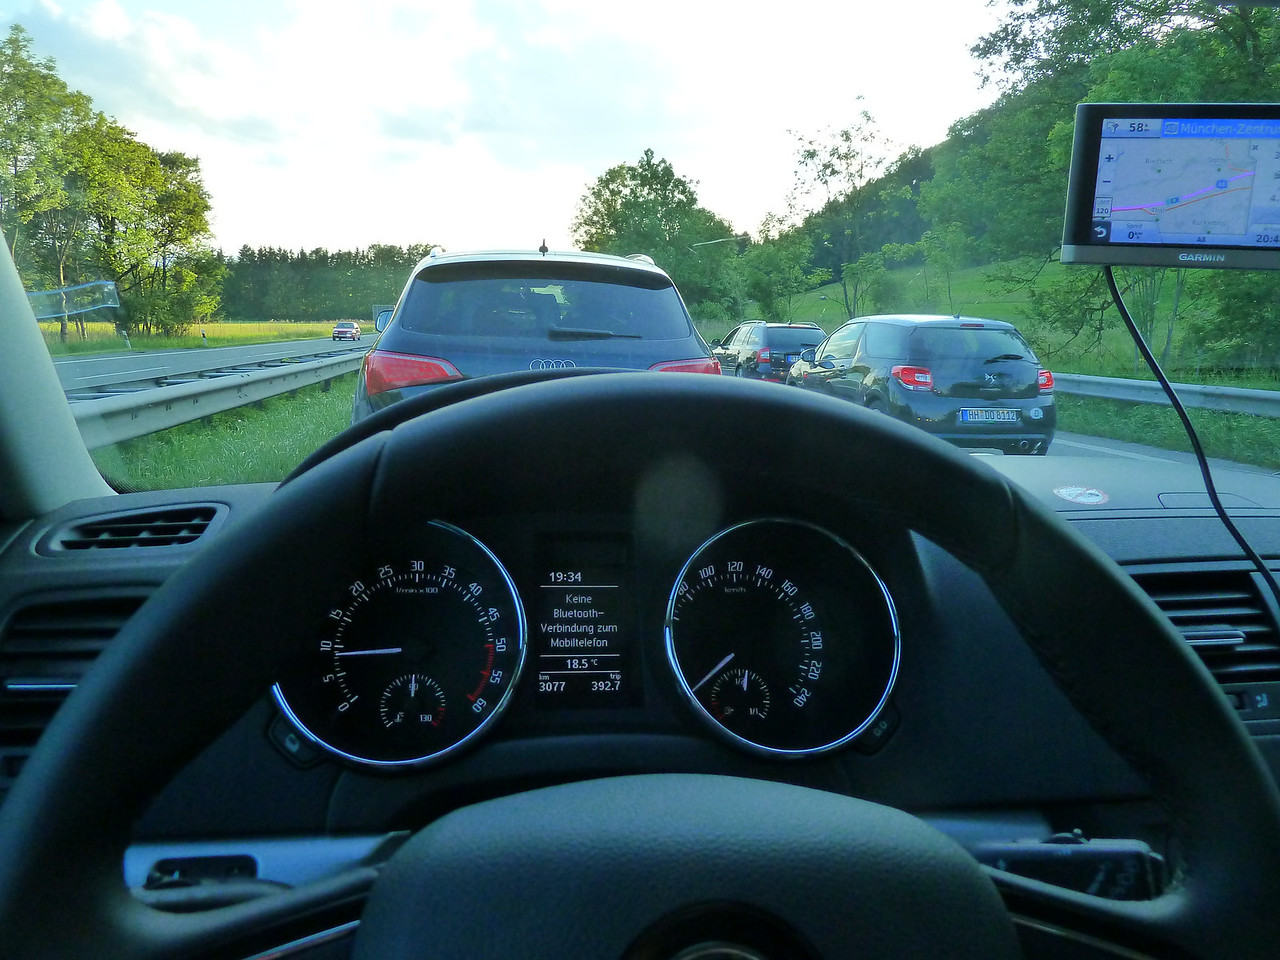 With a few other of our close friends on the road home after a long weekend.  Nothing like a little bumper-to-bumper traffice on the German Autobahns.